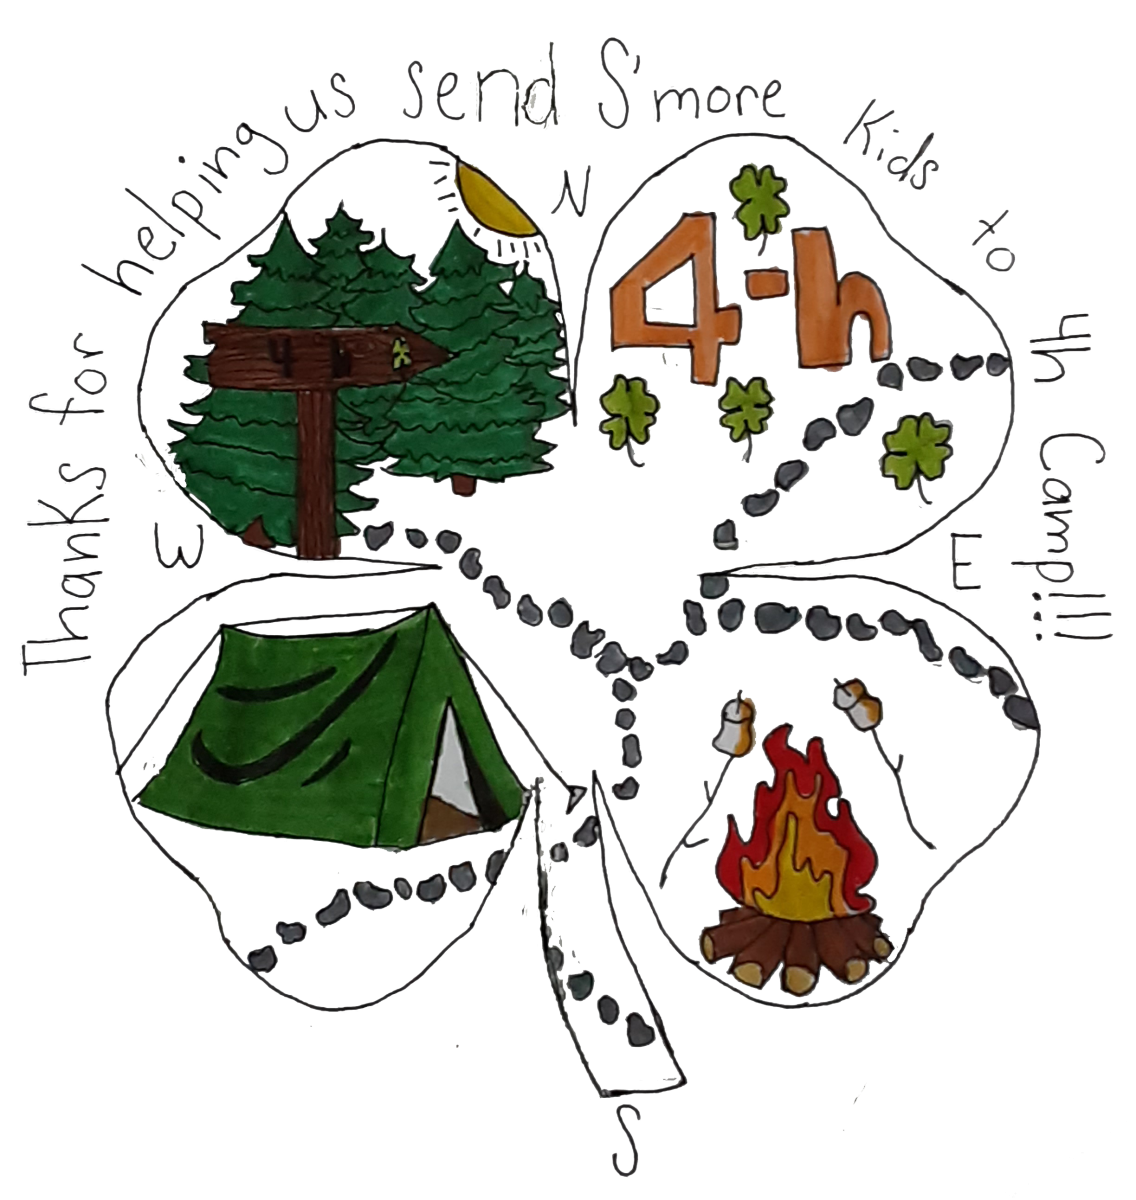 """Text: """"Thanks for helping us send s'more kids to 4-H camp!"""" arched across the top of a 4-H clover. Cardinal directions are labeled on the clover. Inside the clover is a drawing of a forest, a tent, and a campfire as well as """"4-H' surrounded by other clovers."""